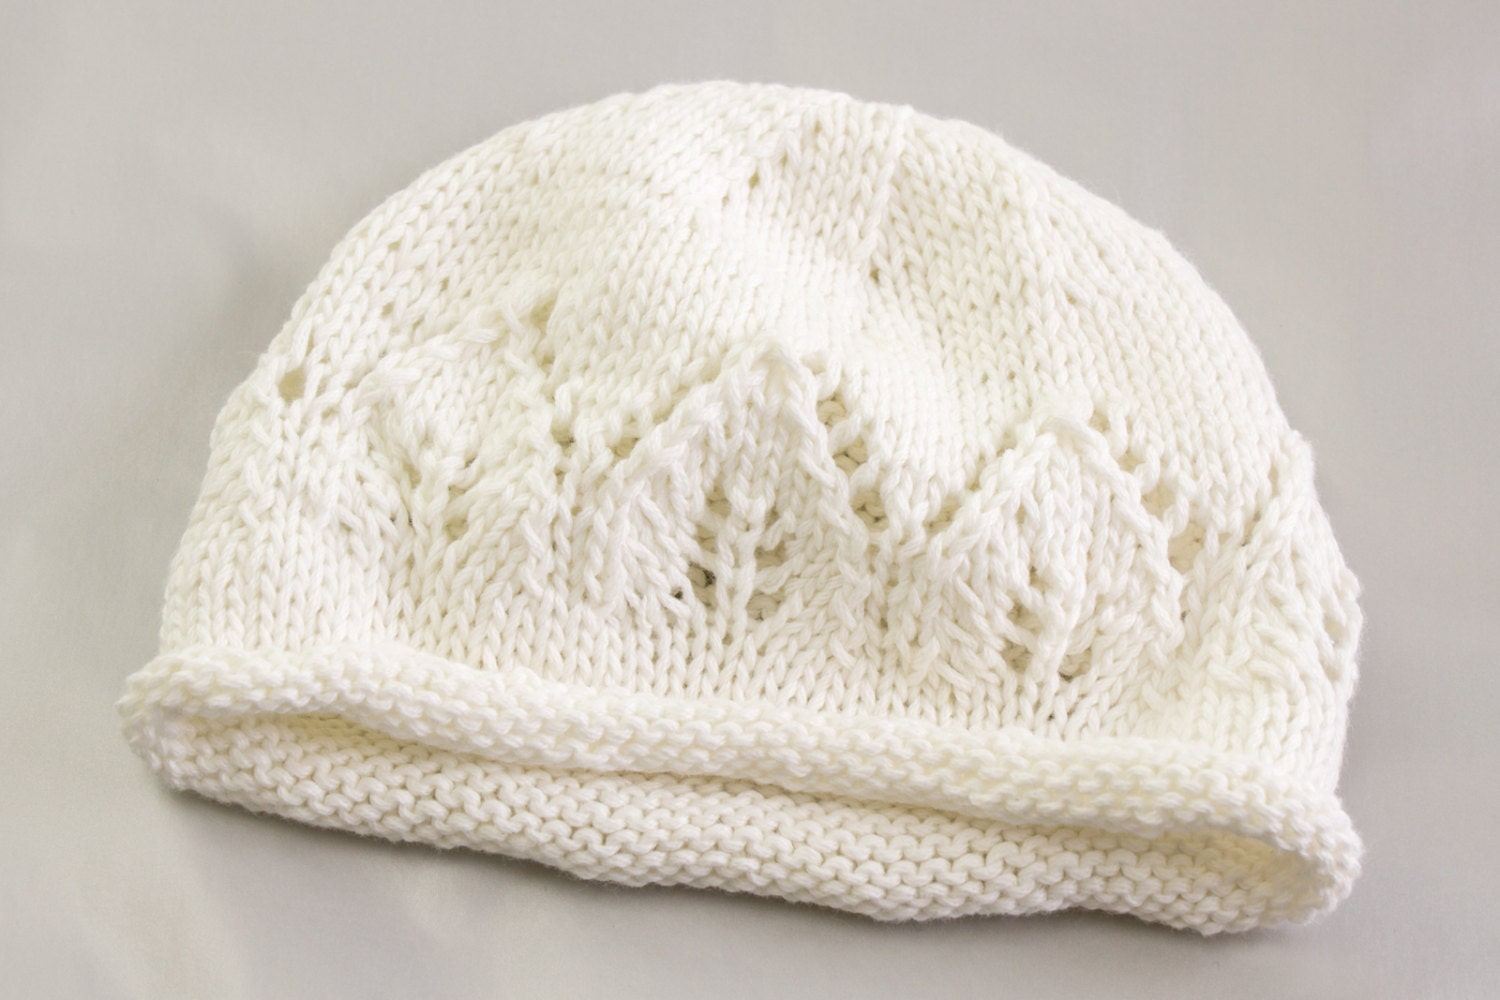 KNITTING PATTERN, Newborn Baby Hat, Baby Hat with Lace Panel, Baby ...